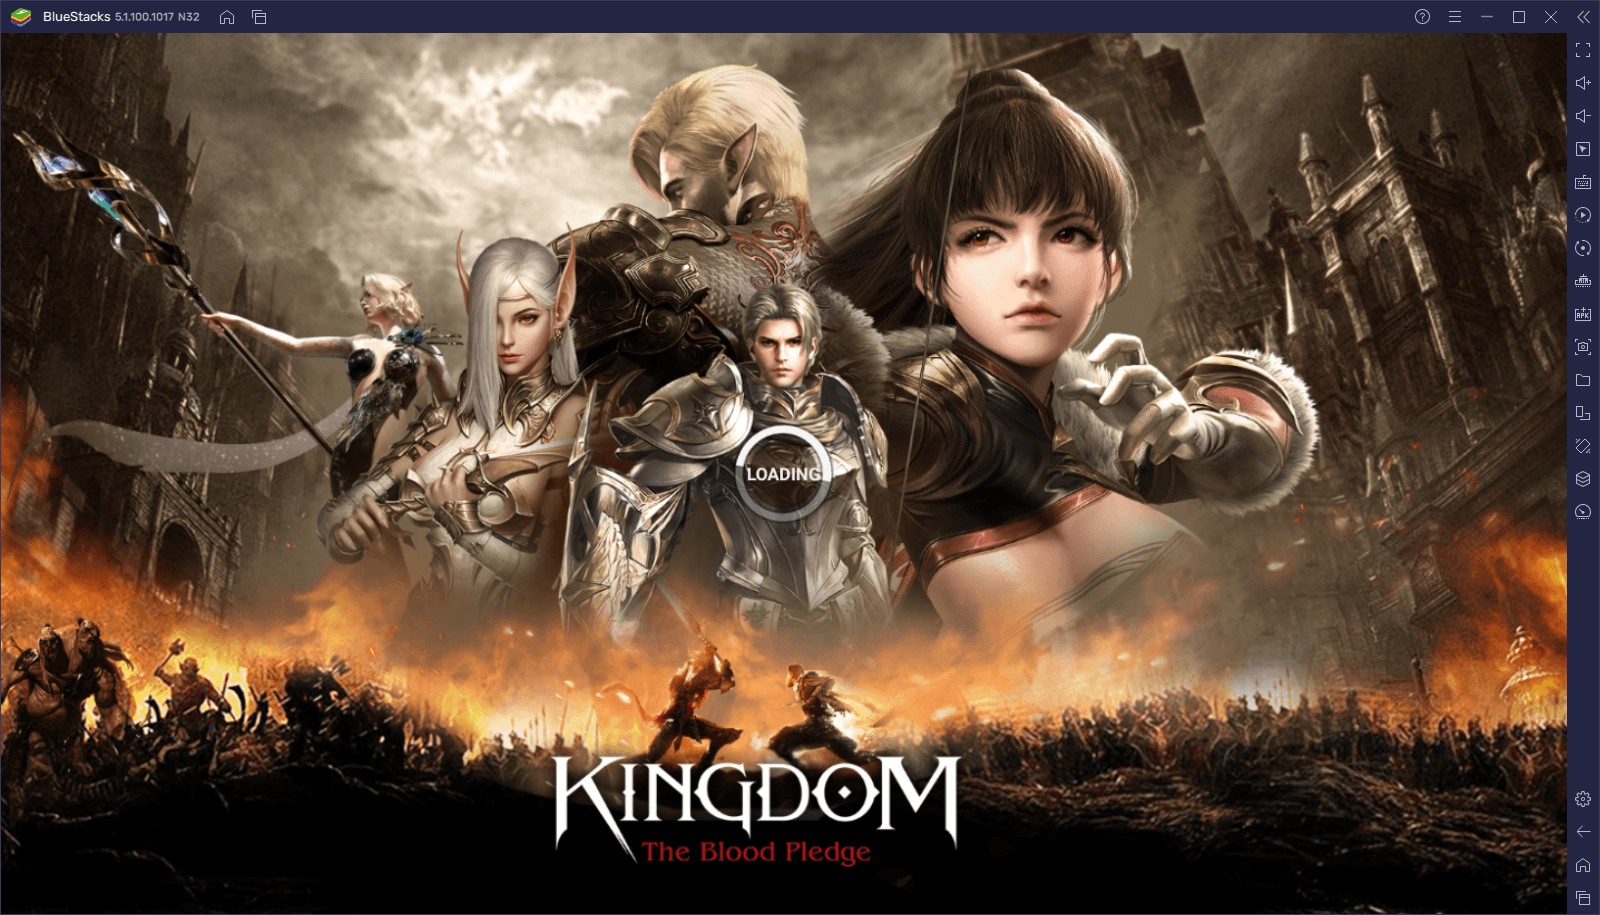 How to Download and Play Kingdom: The Blood Pledge on PC with BlueStacks